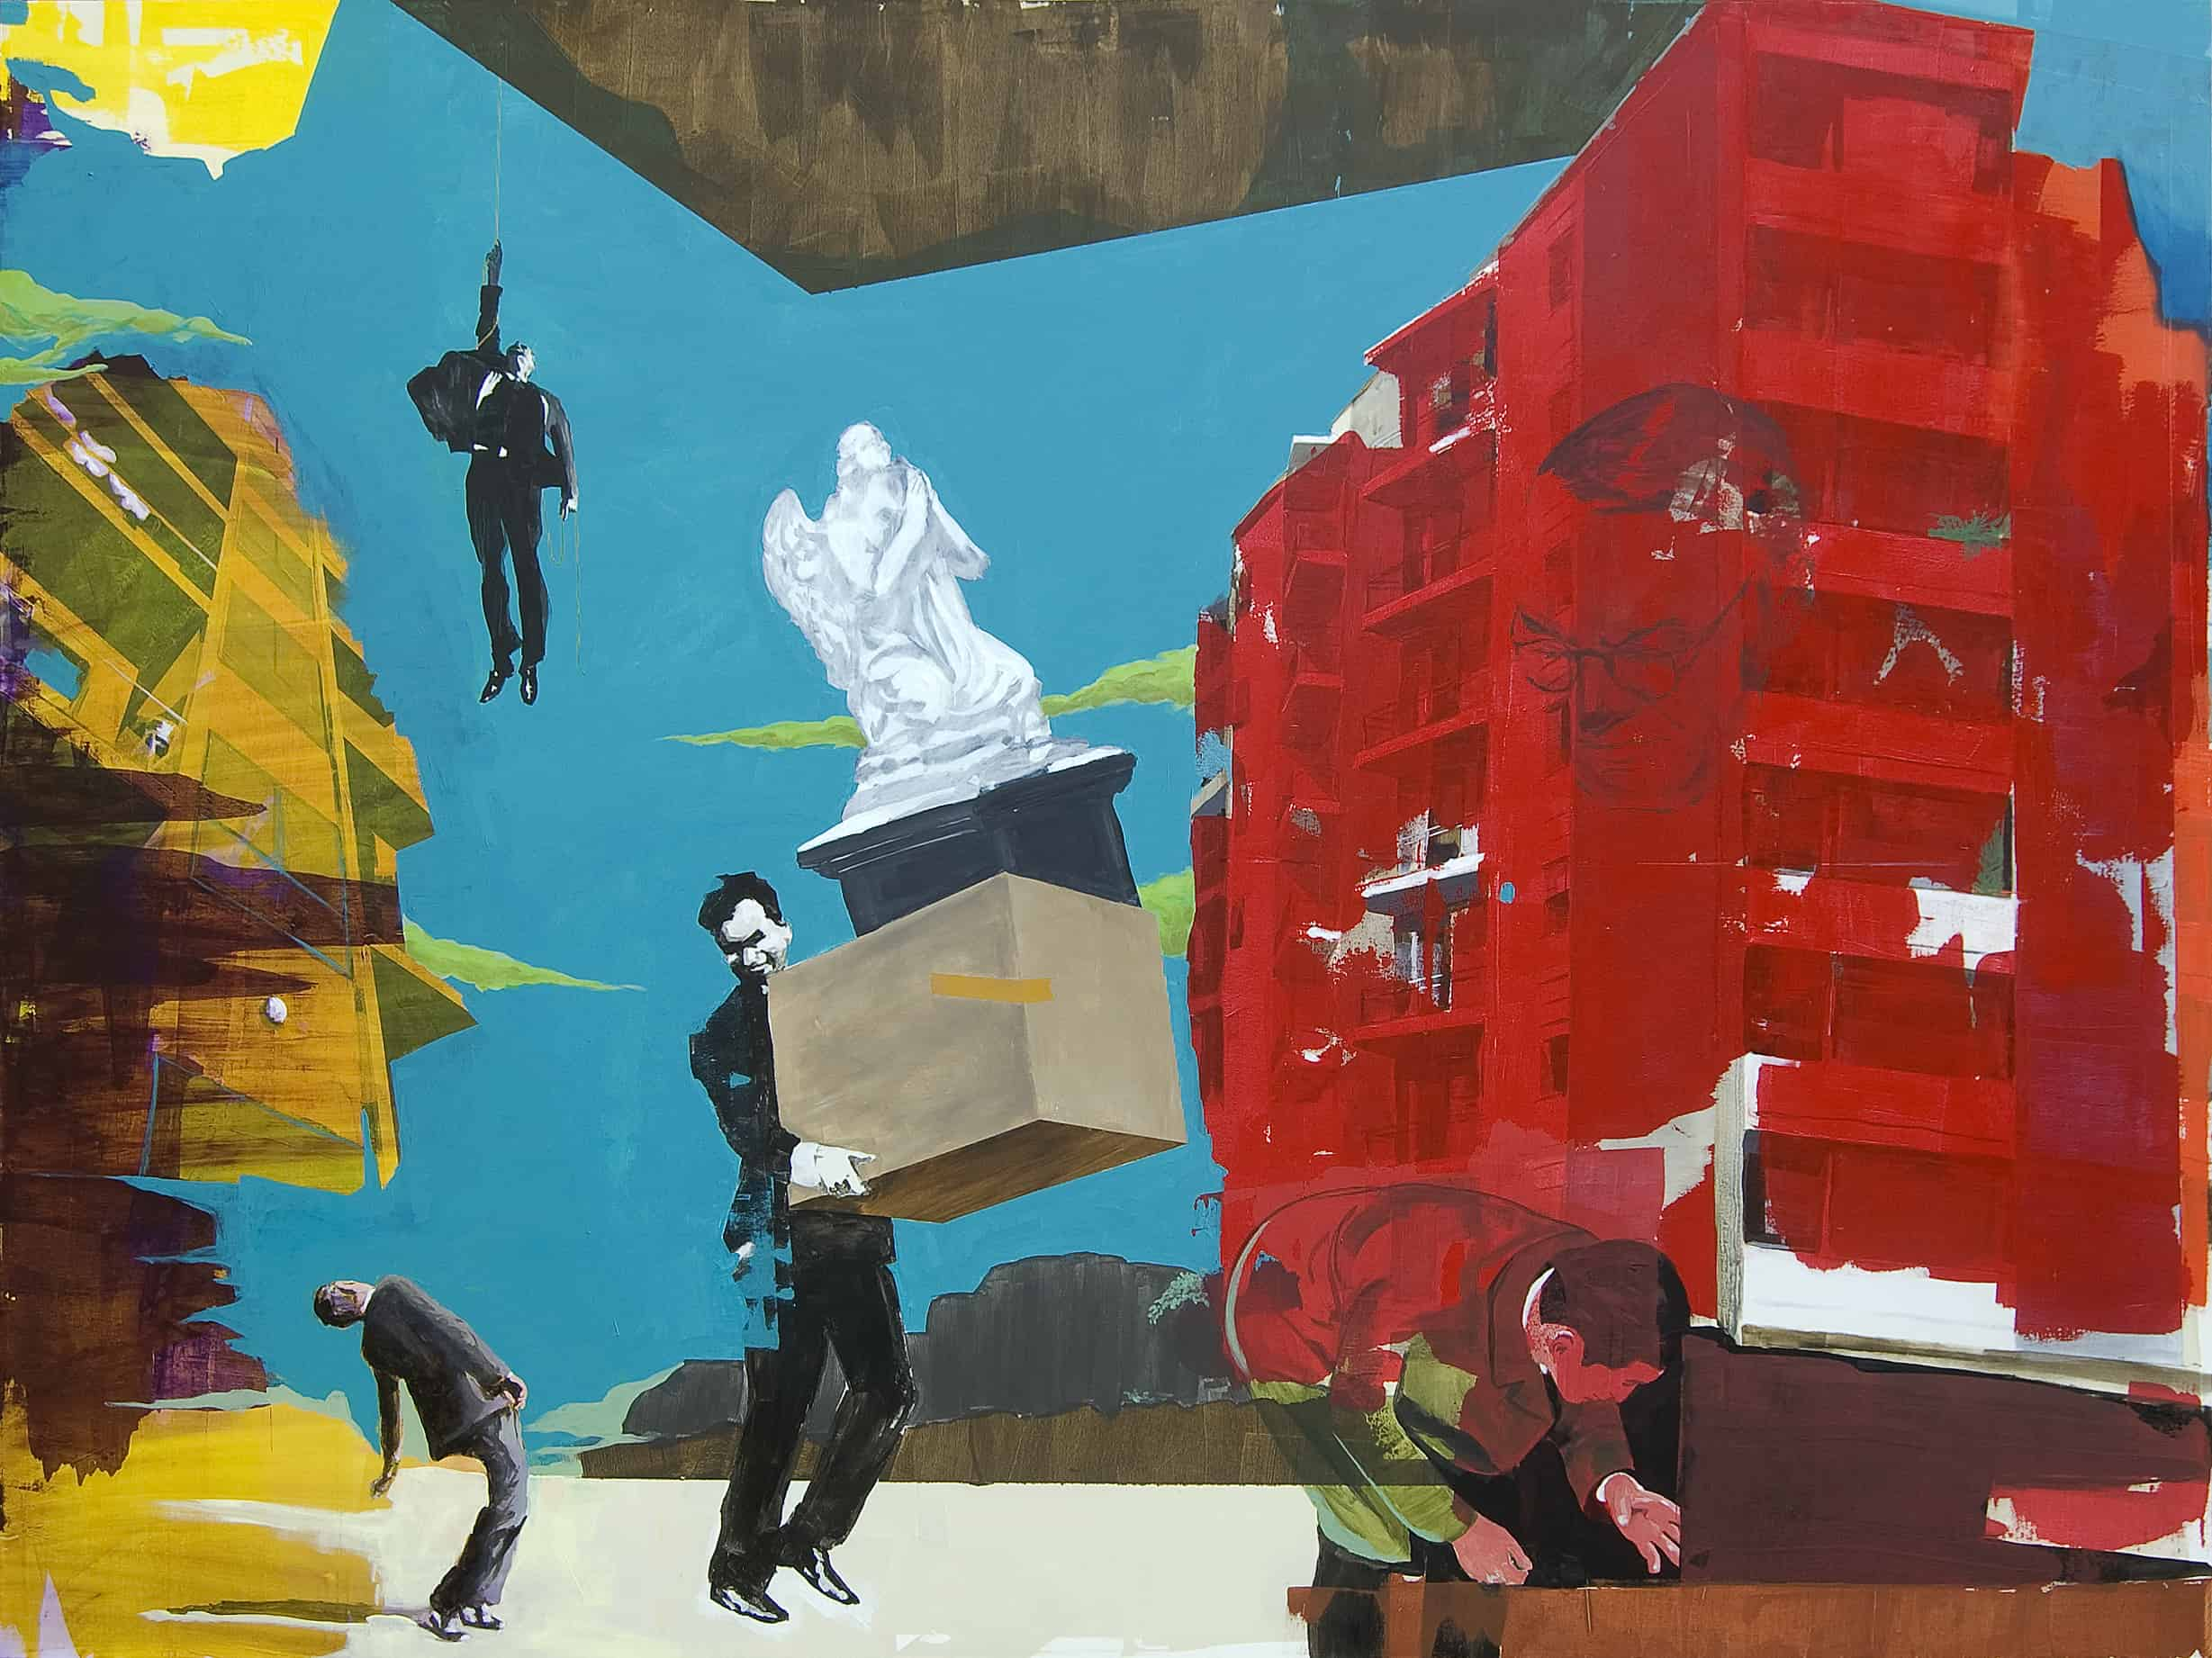 Paolo De Biasi, The great escape, tecnica mista su tela, 150x200 cm., 2010